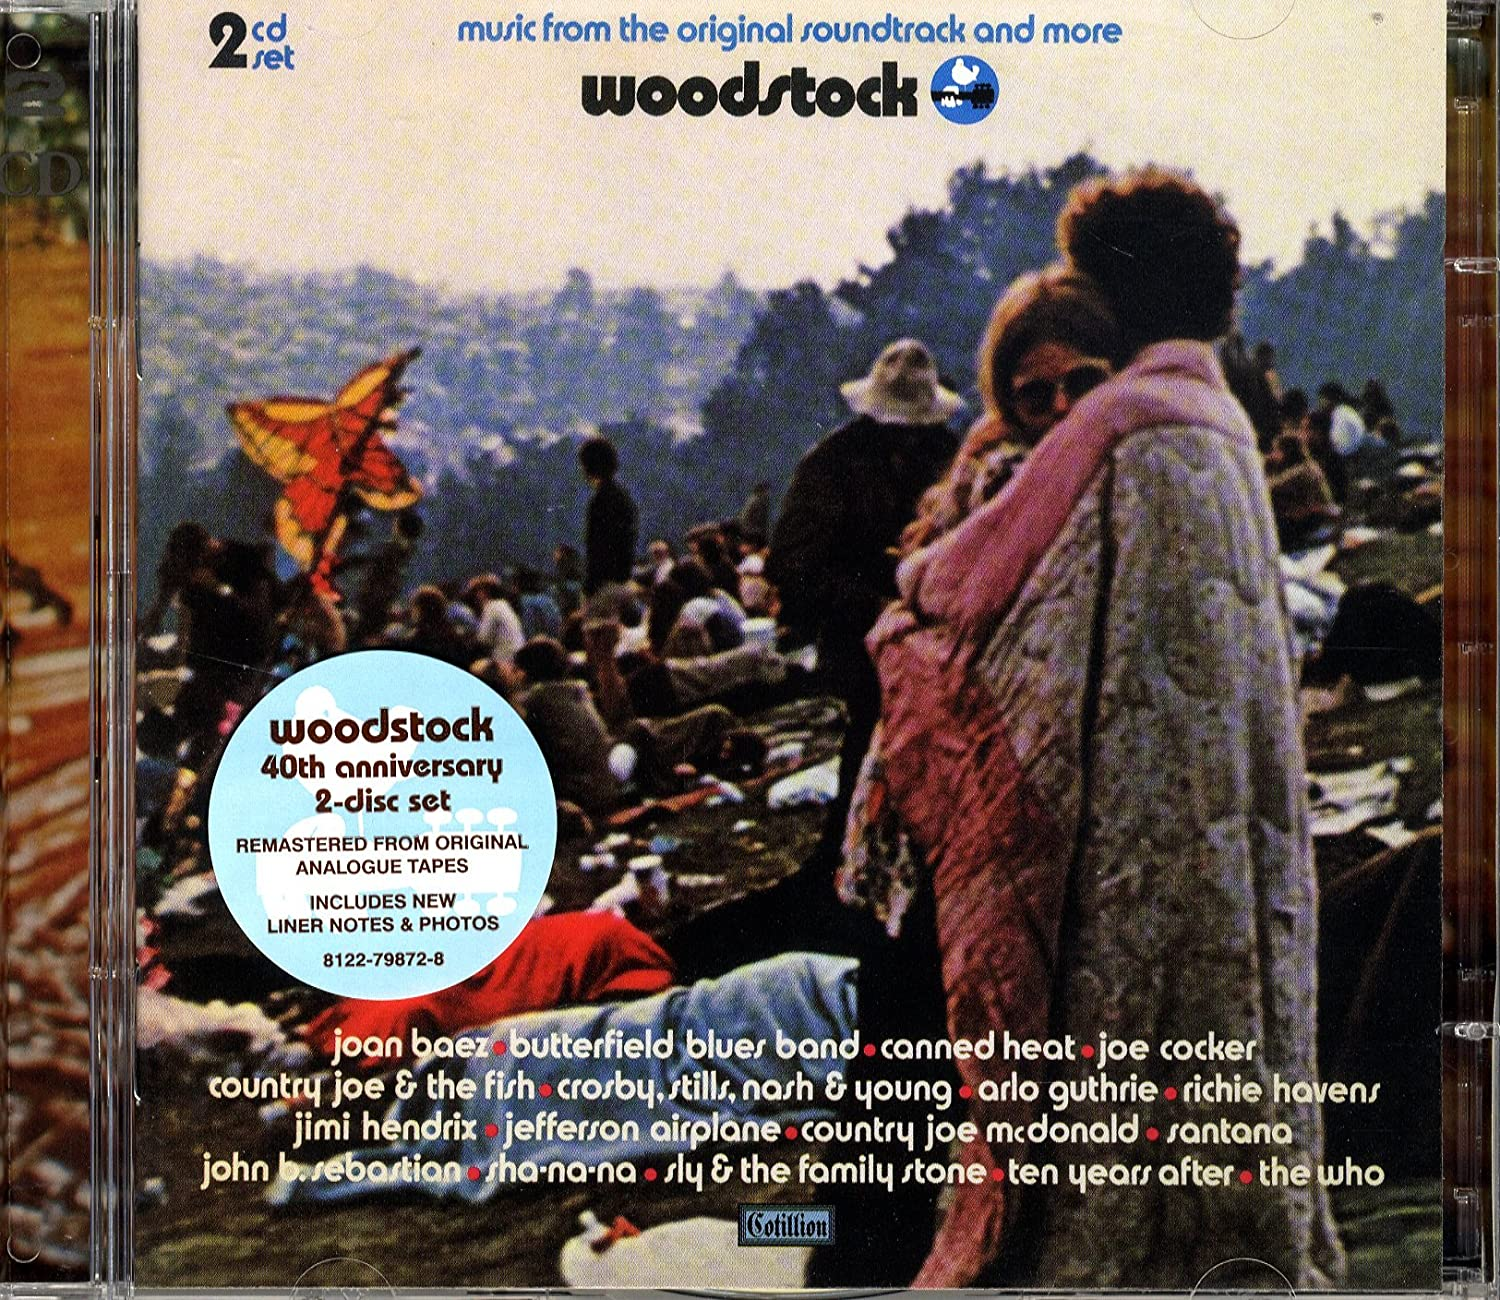 Woodstock Music from the Original Soundtrack and More